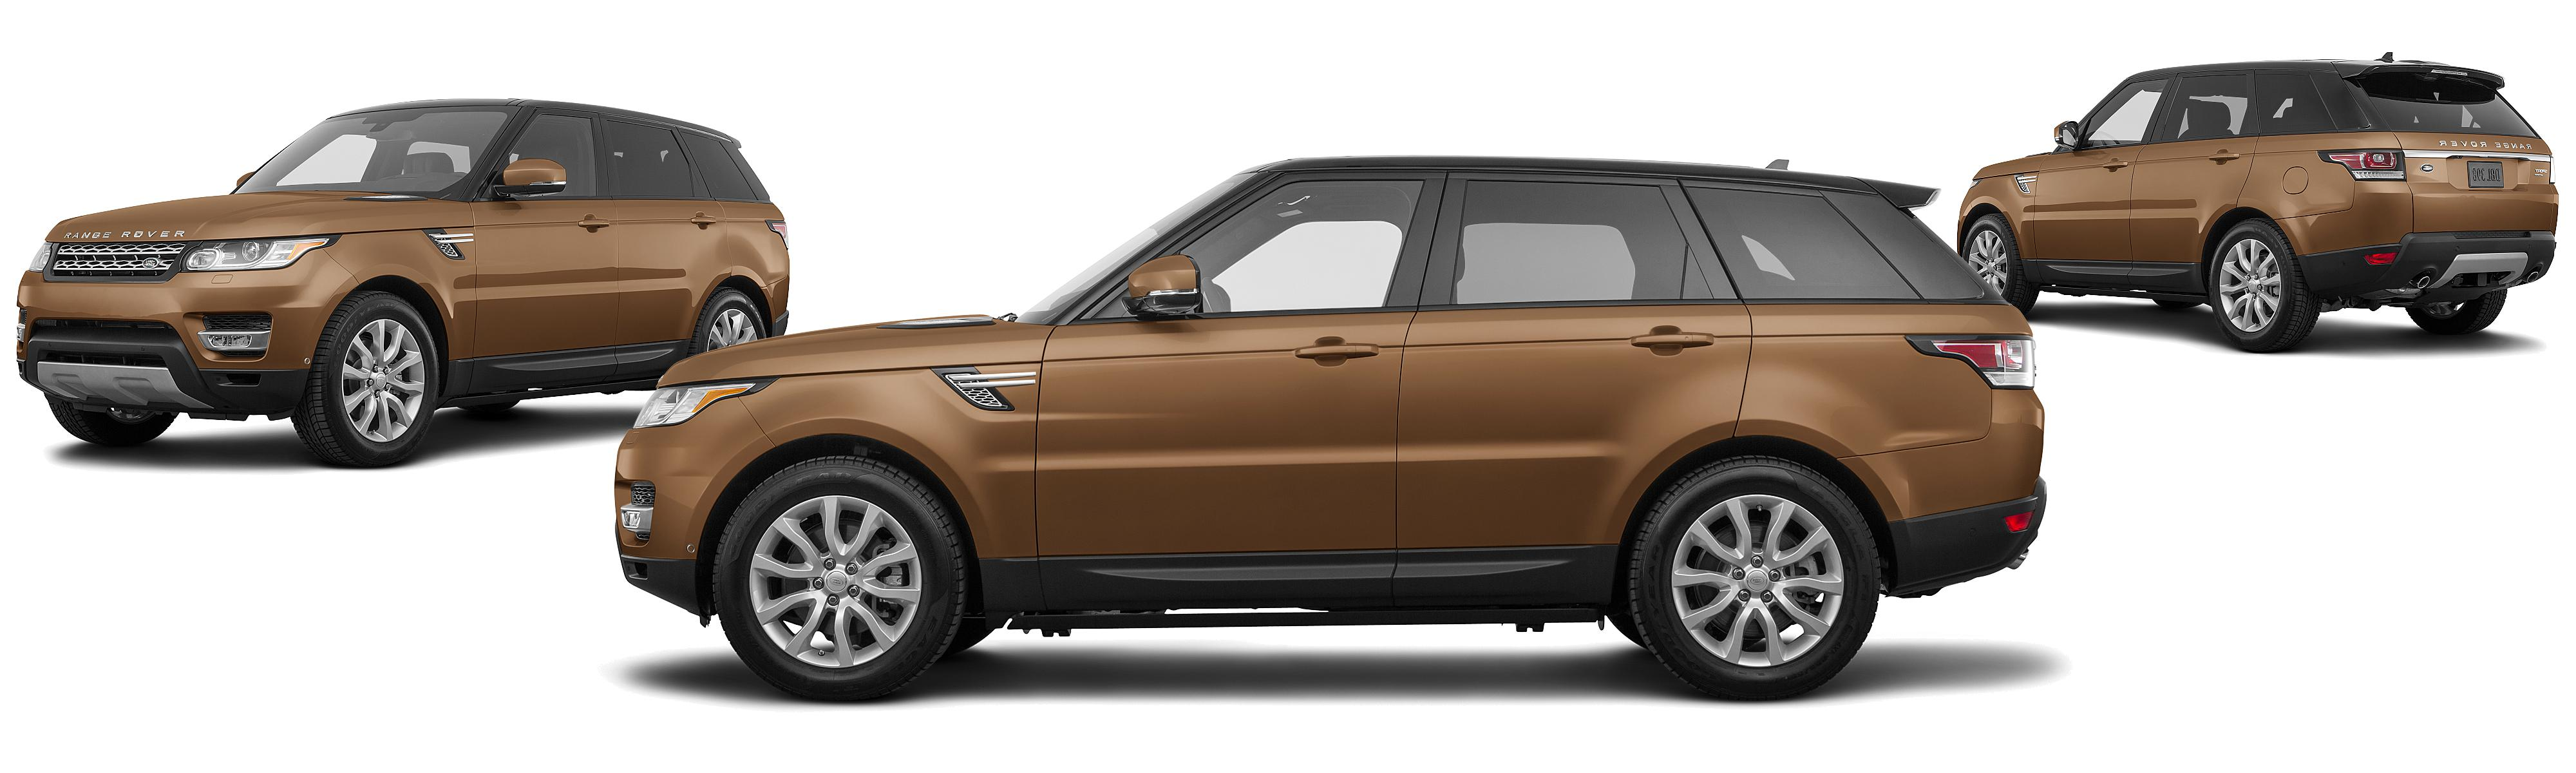 2016 Land Rover Range Rover Sport AWD Autobiography 4dr SUV ...